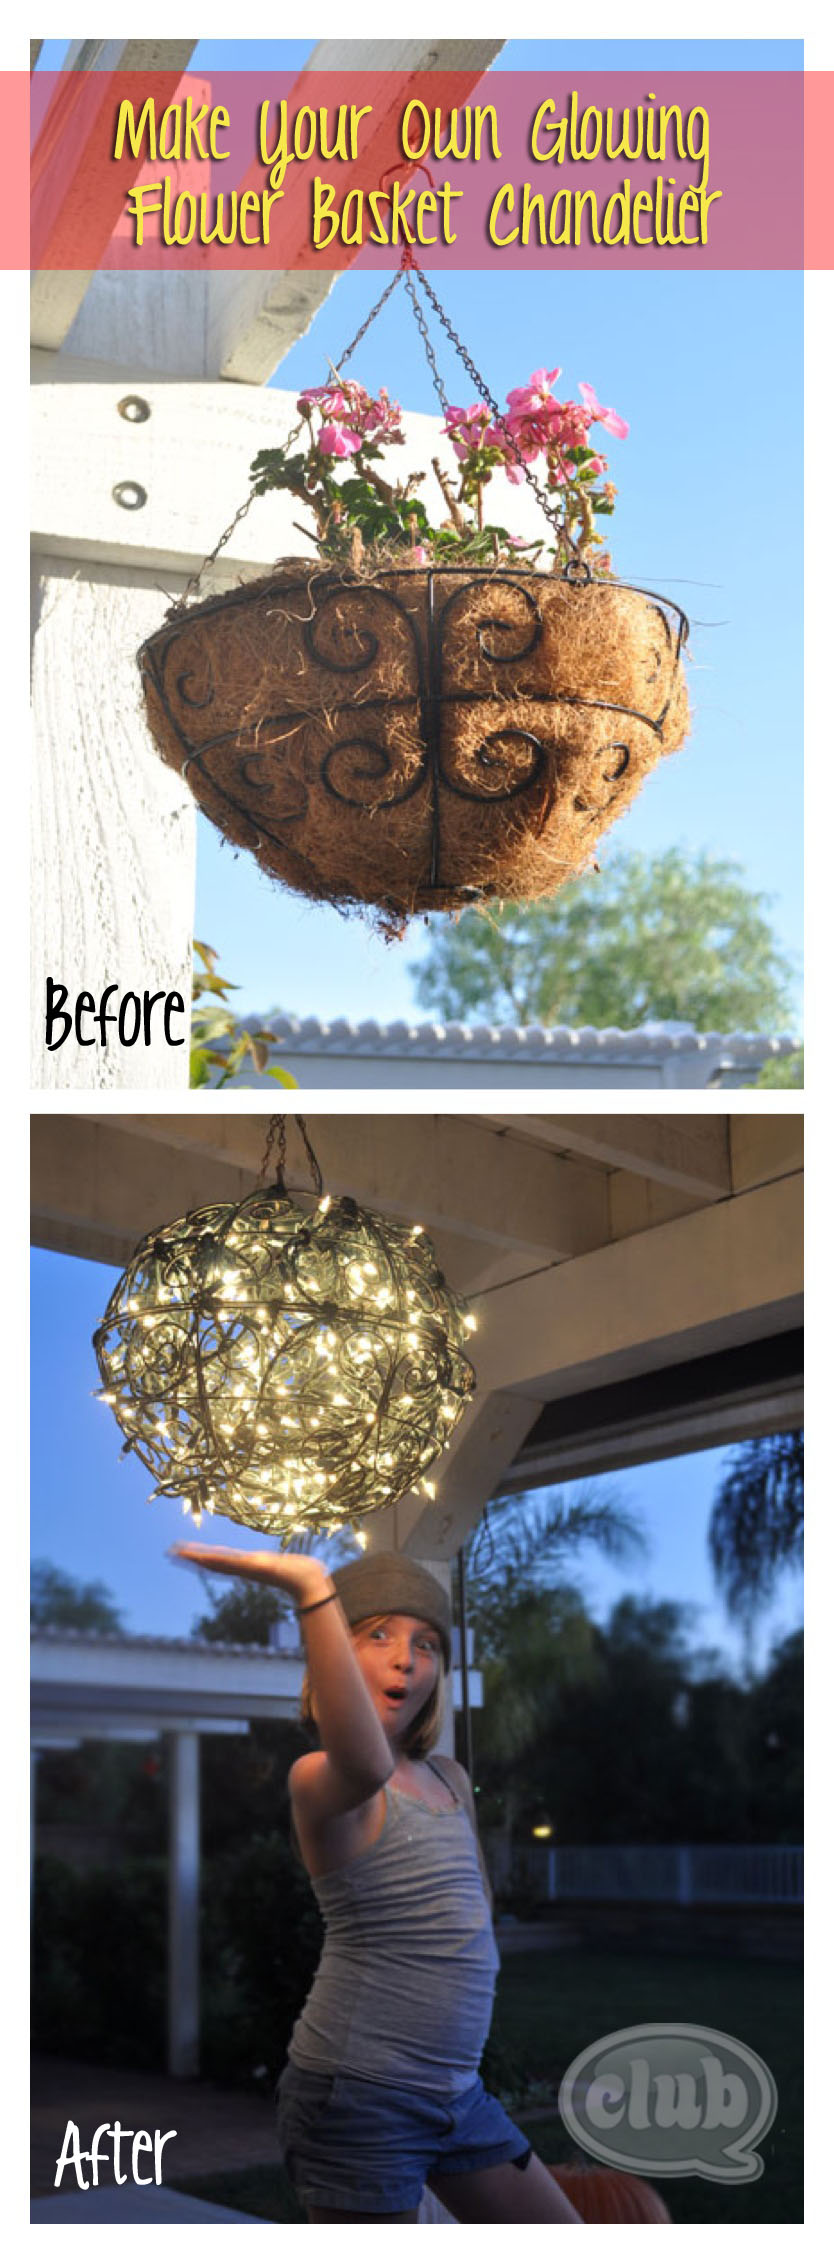 repurpose flower baskets into a glowing outdoor chandelier